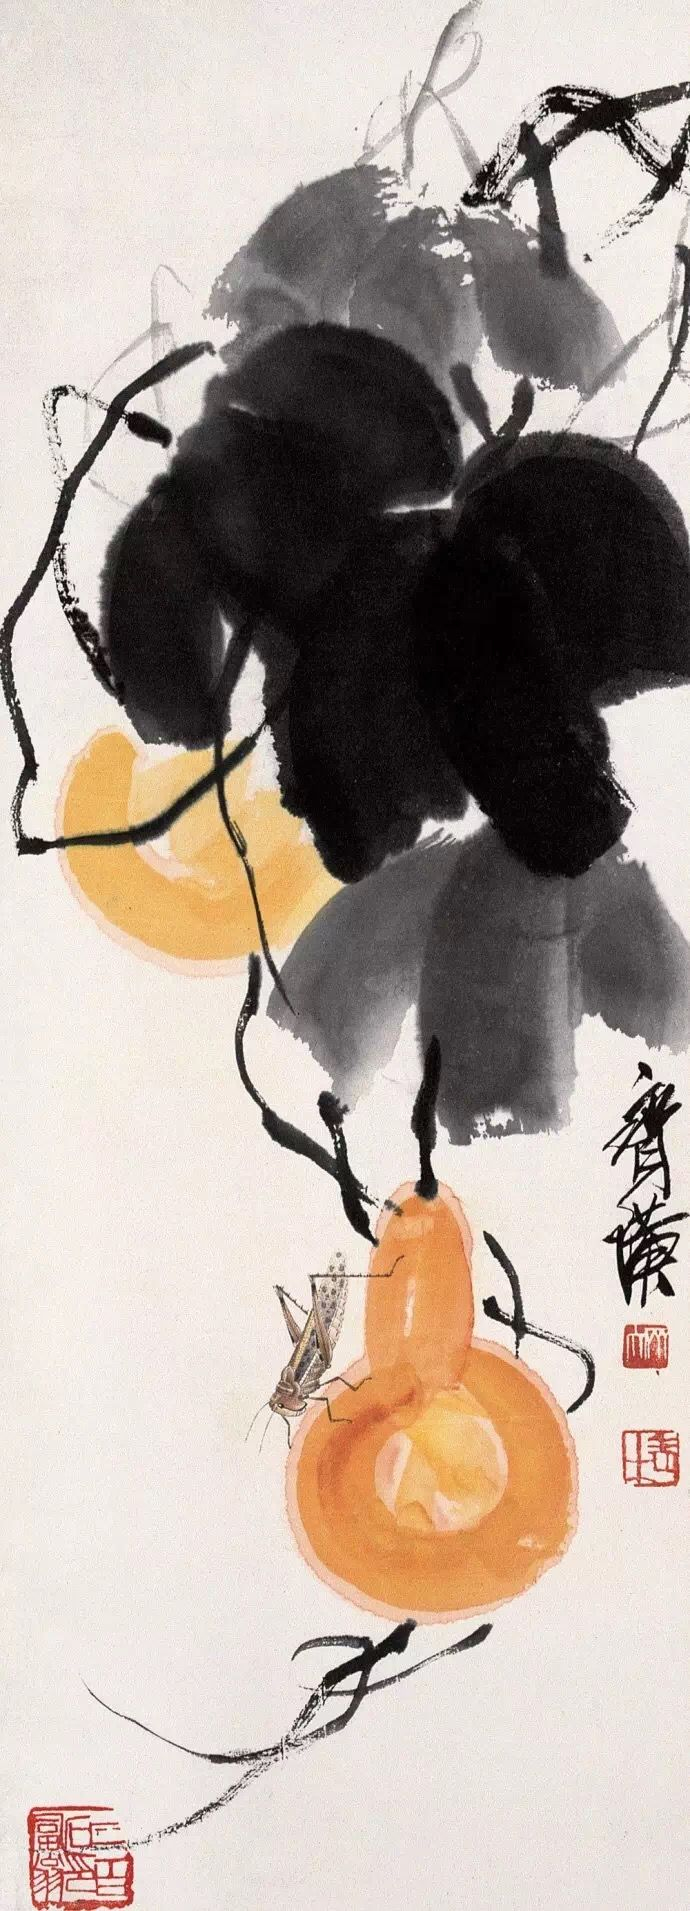 Watercolor art history brush - Qi Bai Shi Chinese Brush Painting Insect Vegetable